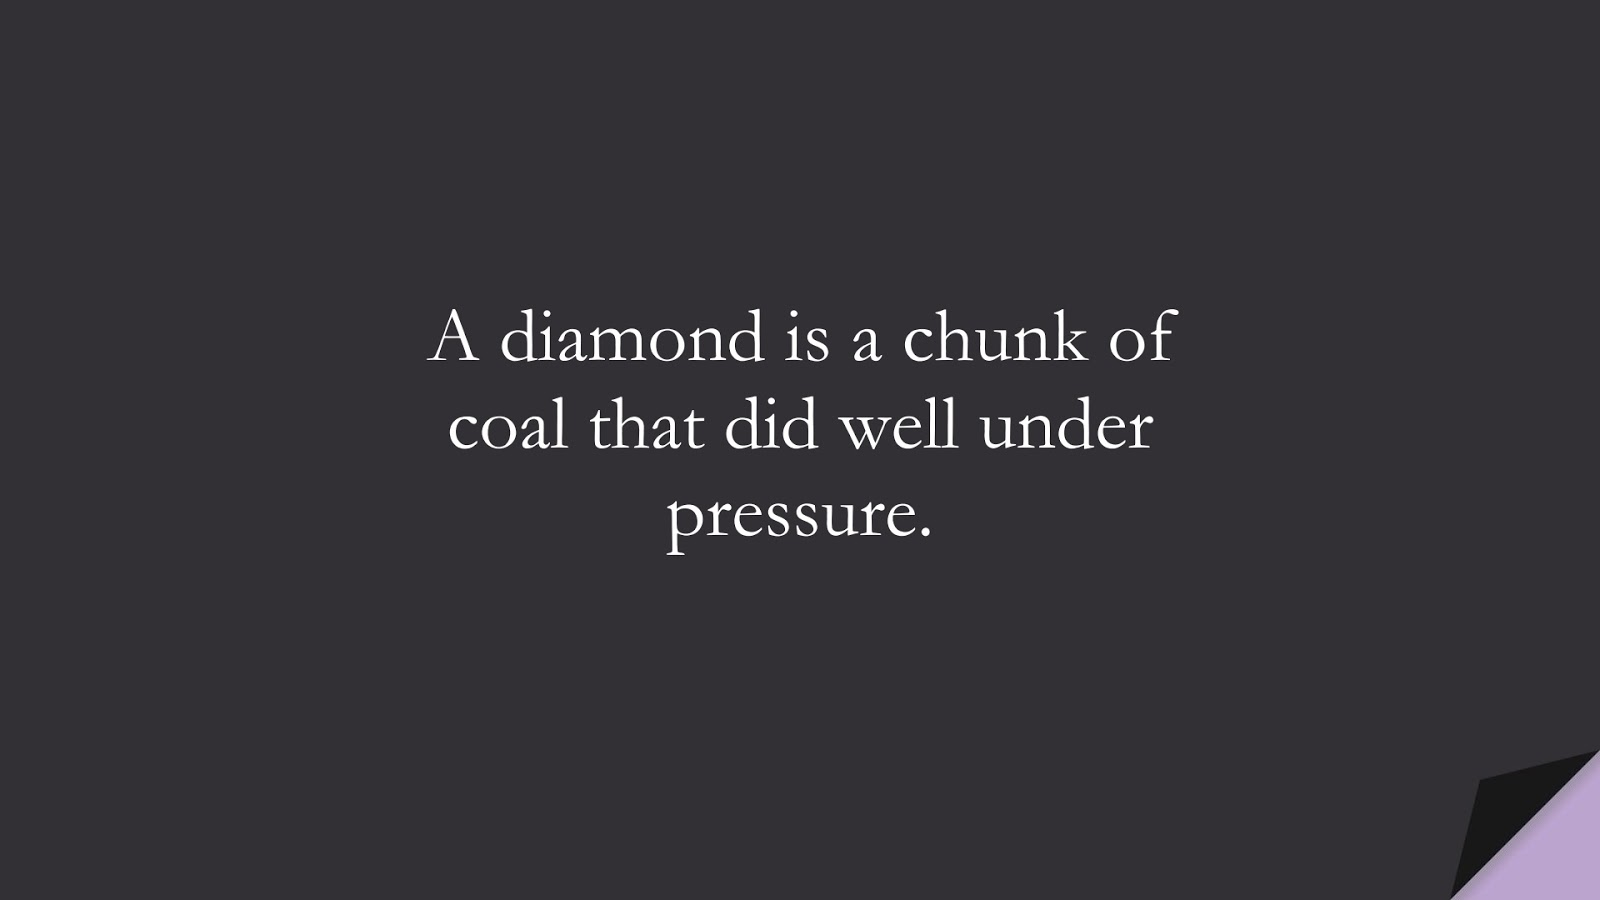 A diamond is a chunk of coal that did well under pressure.FALSE